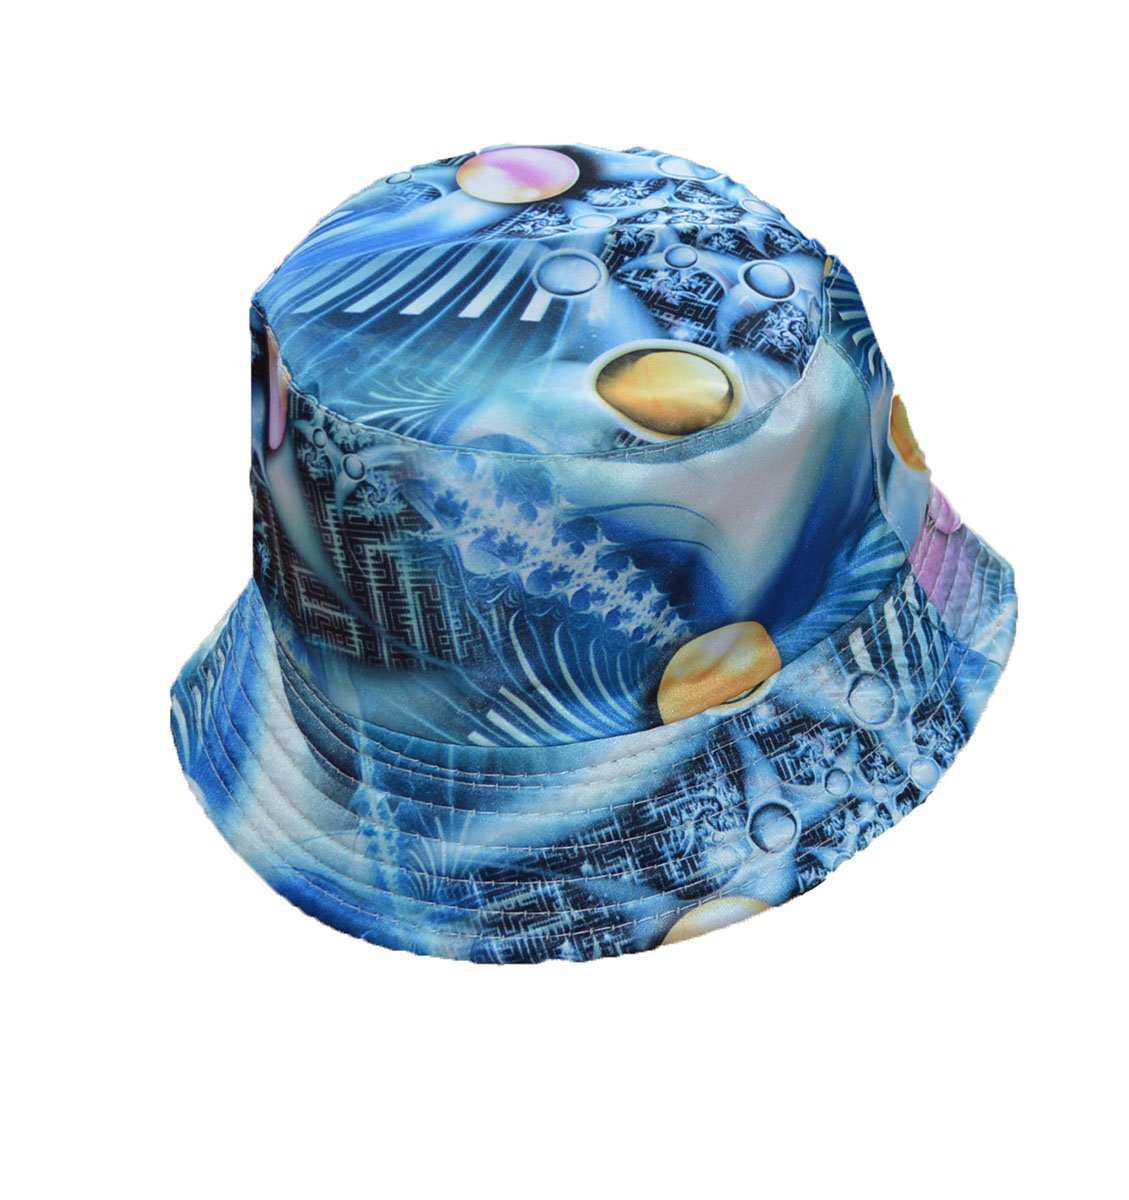 KGM Accessories Cool Universe print bucket style sun hat Blue